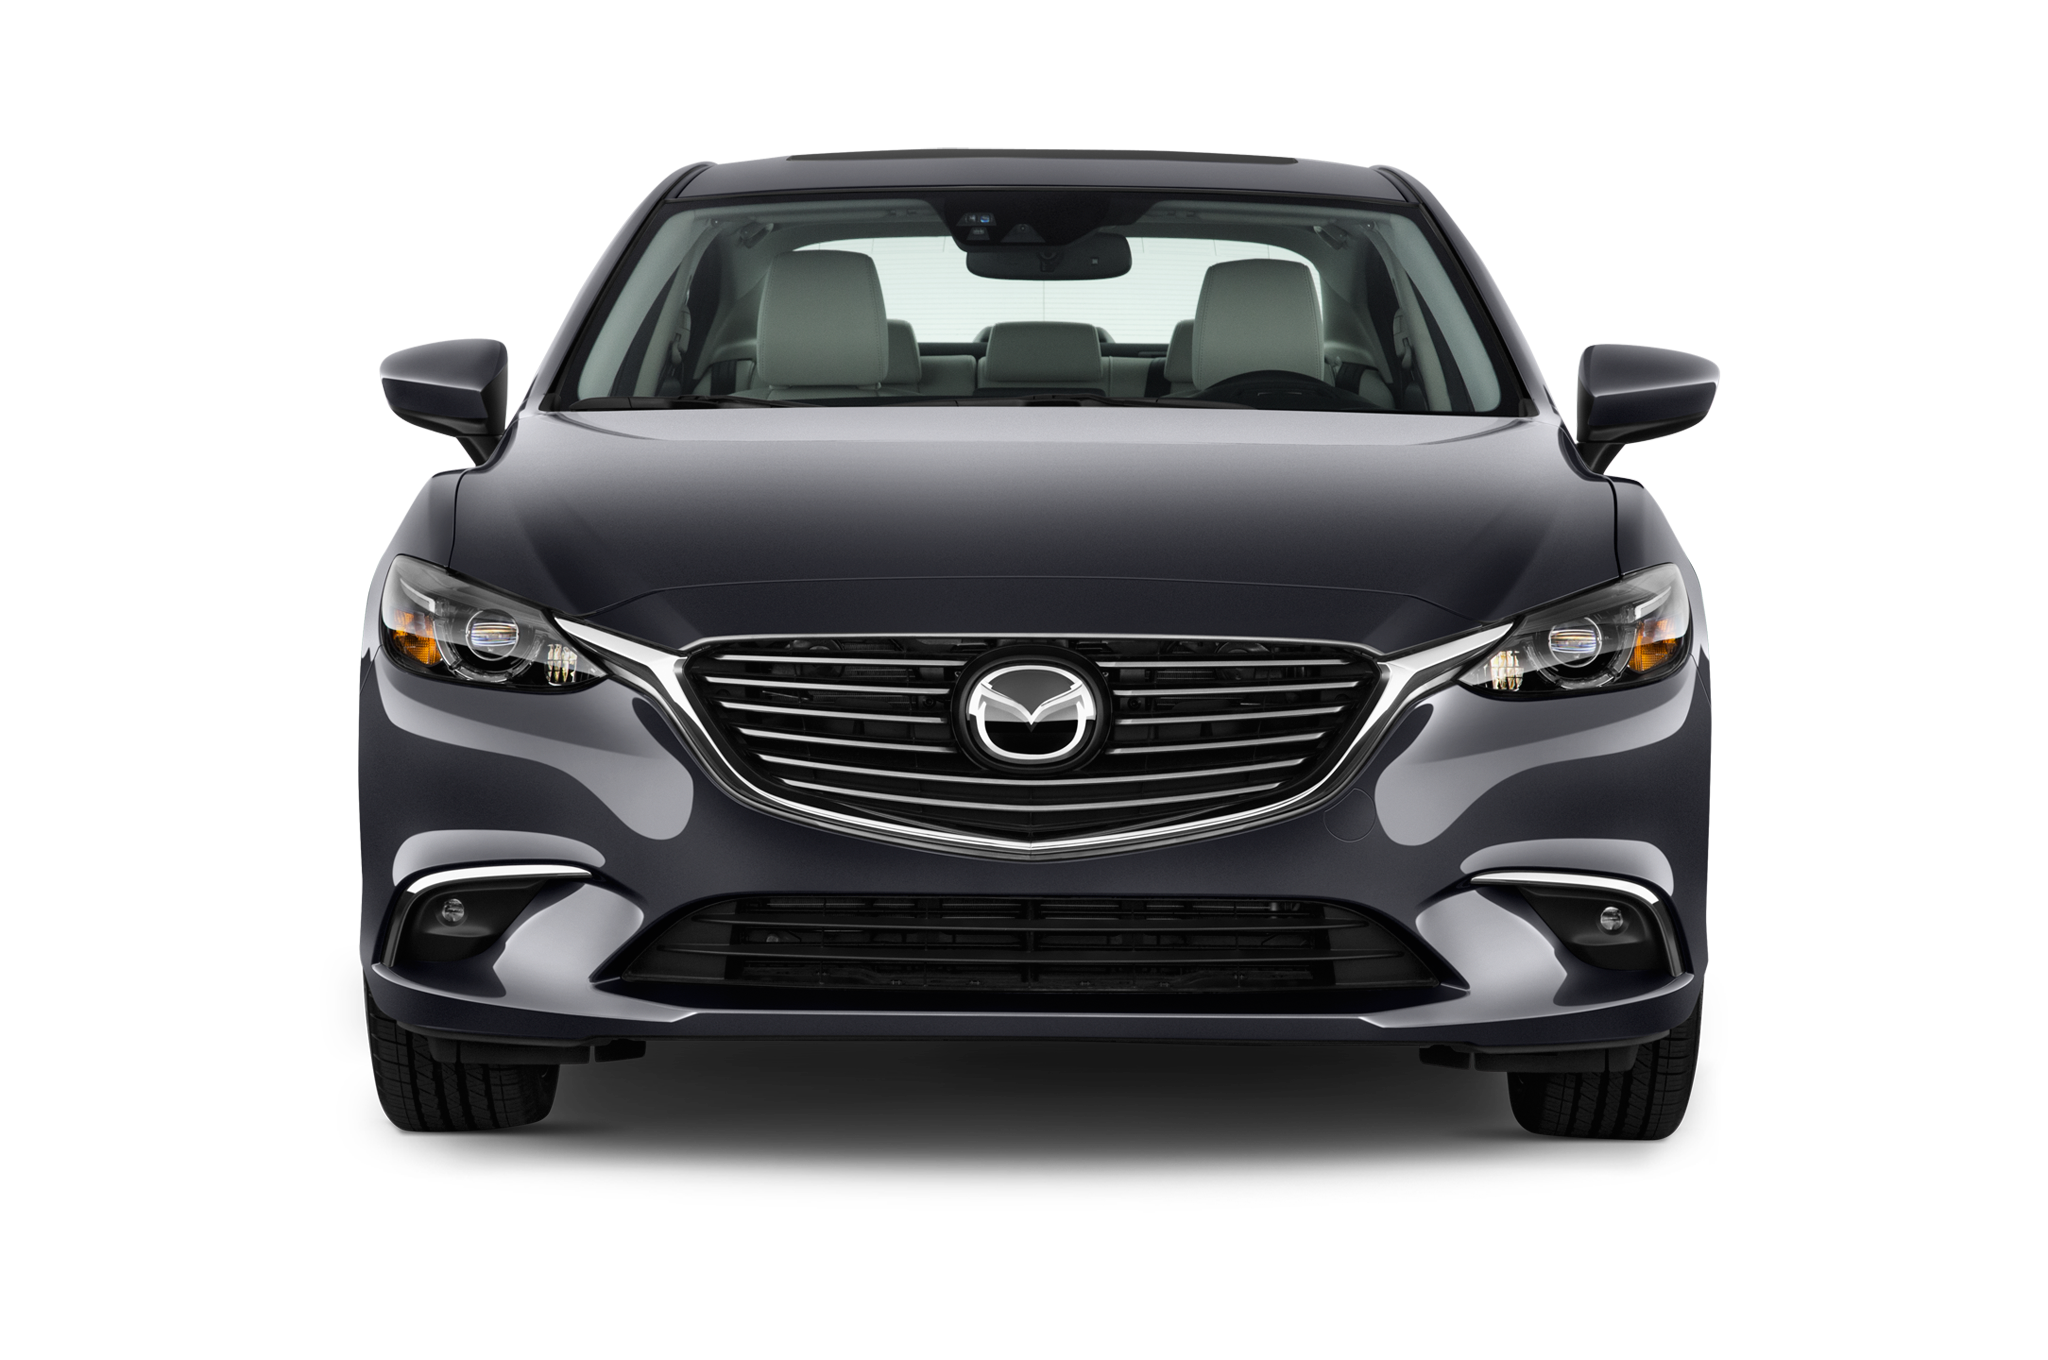 2017 Mazda6 Grand Touring First Drive Review